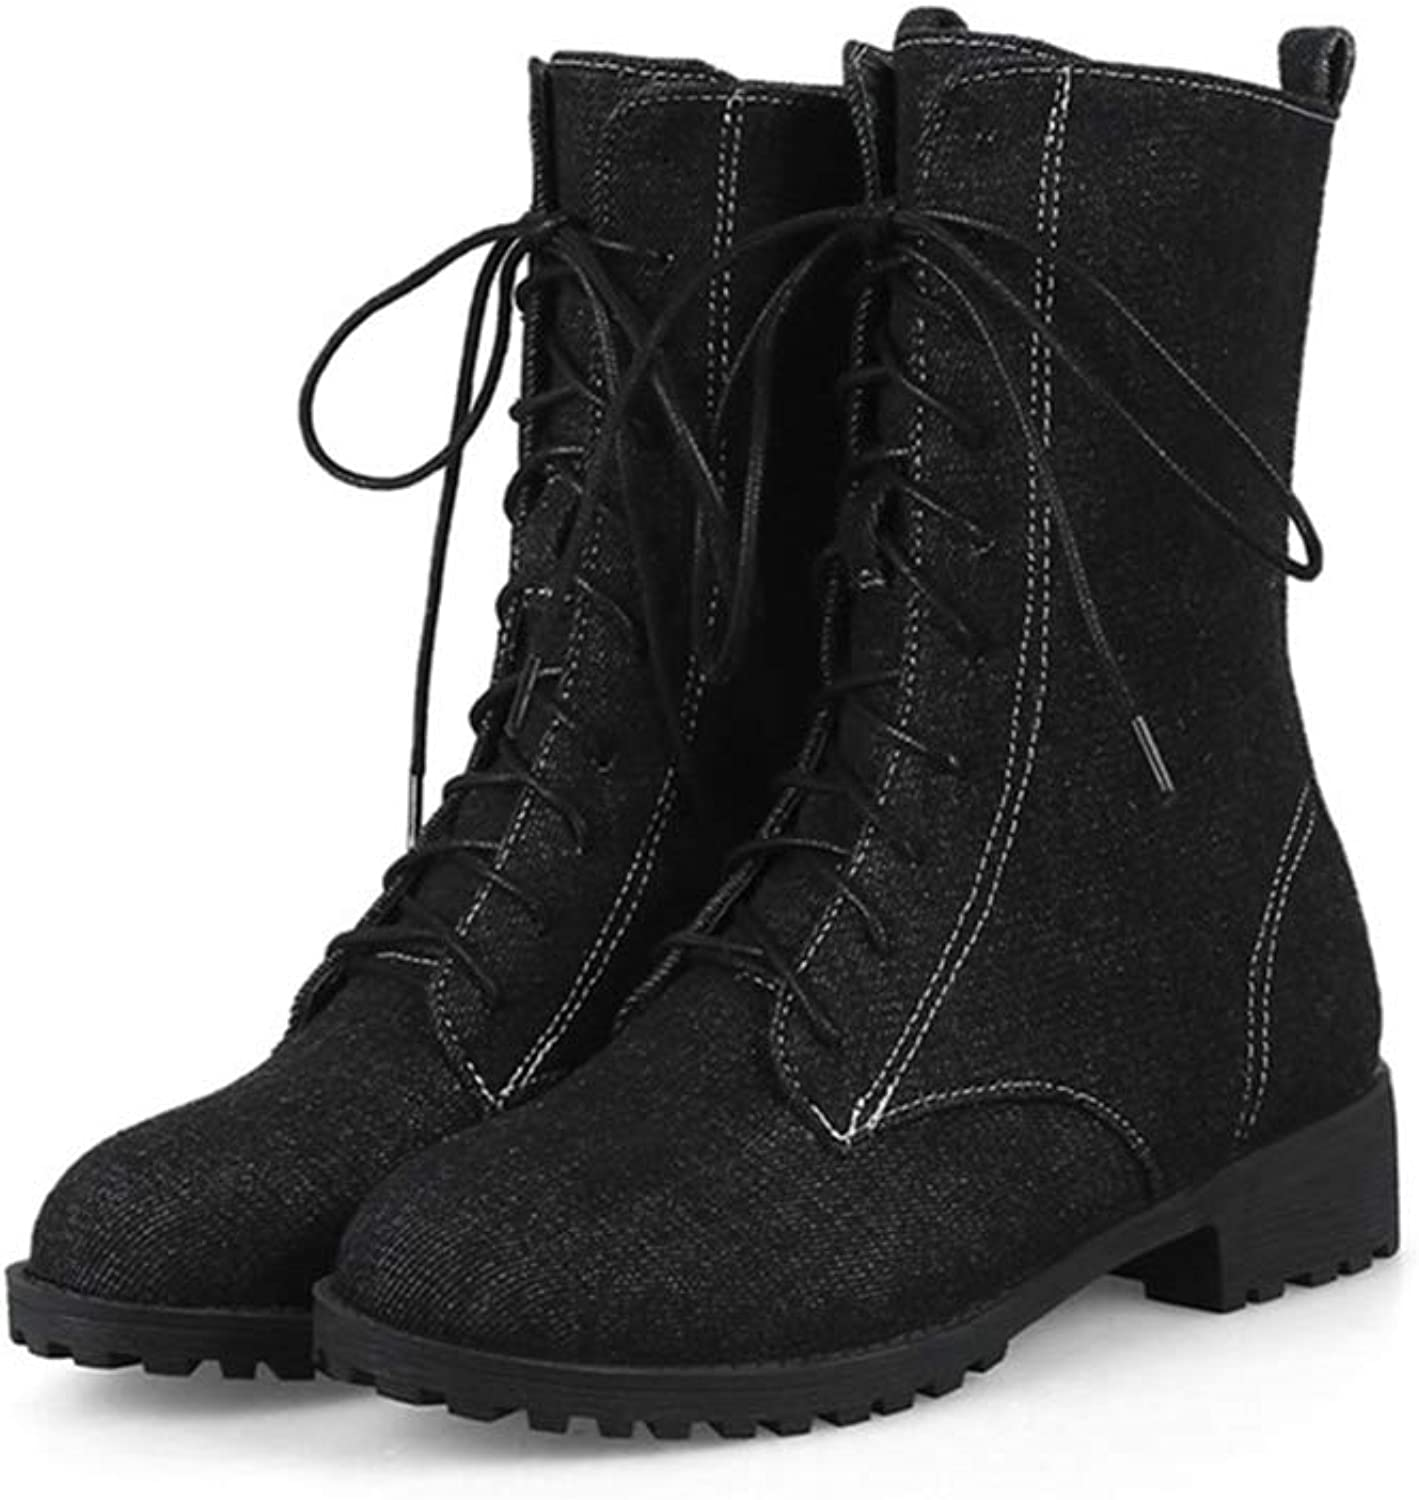 Womens Wedge Platform Mid Calf Boots Denim Material Lace Up Rubber Sole Short Plush Winter Martin shoes